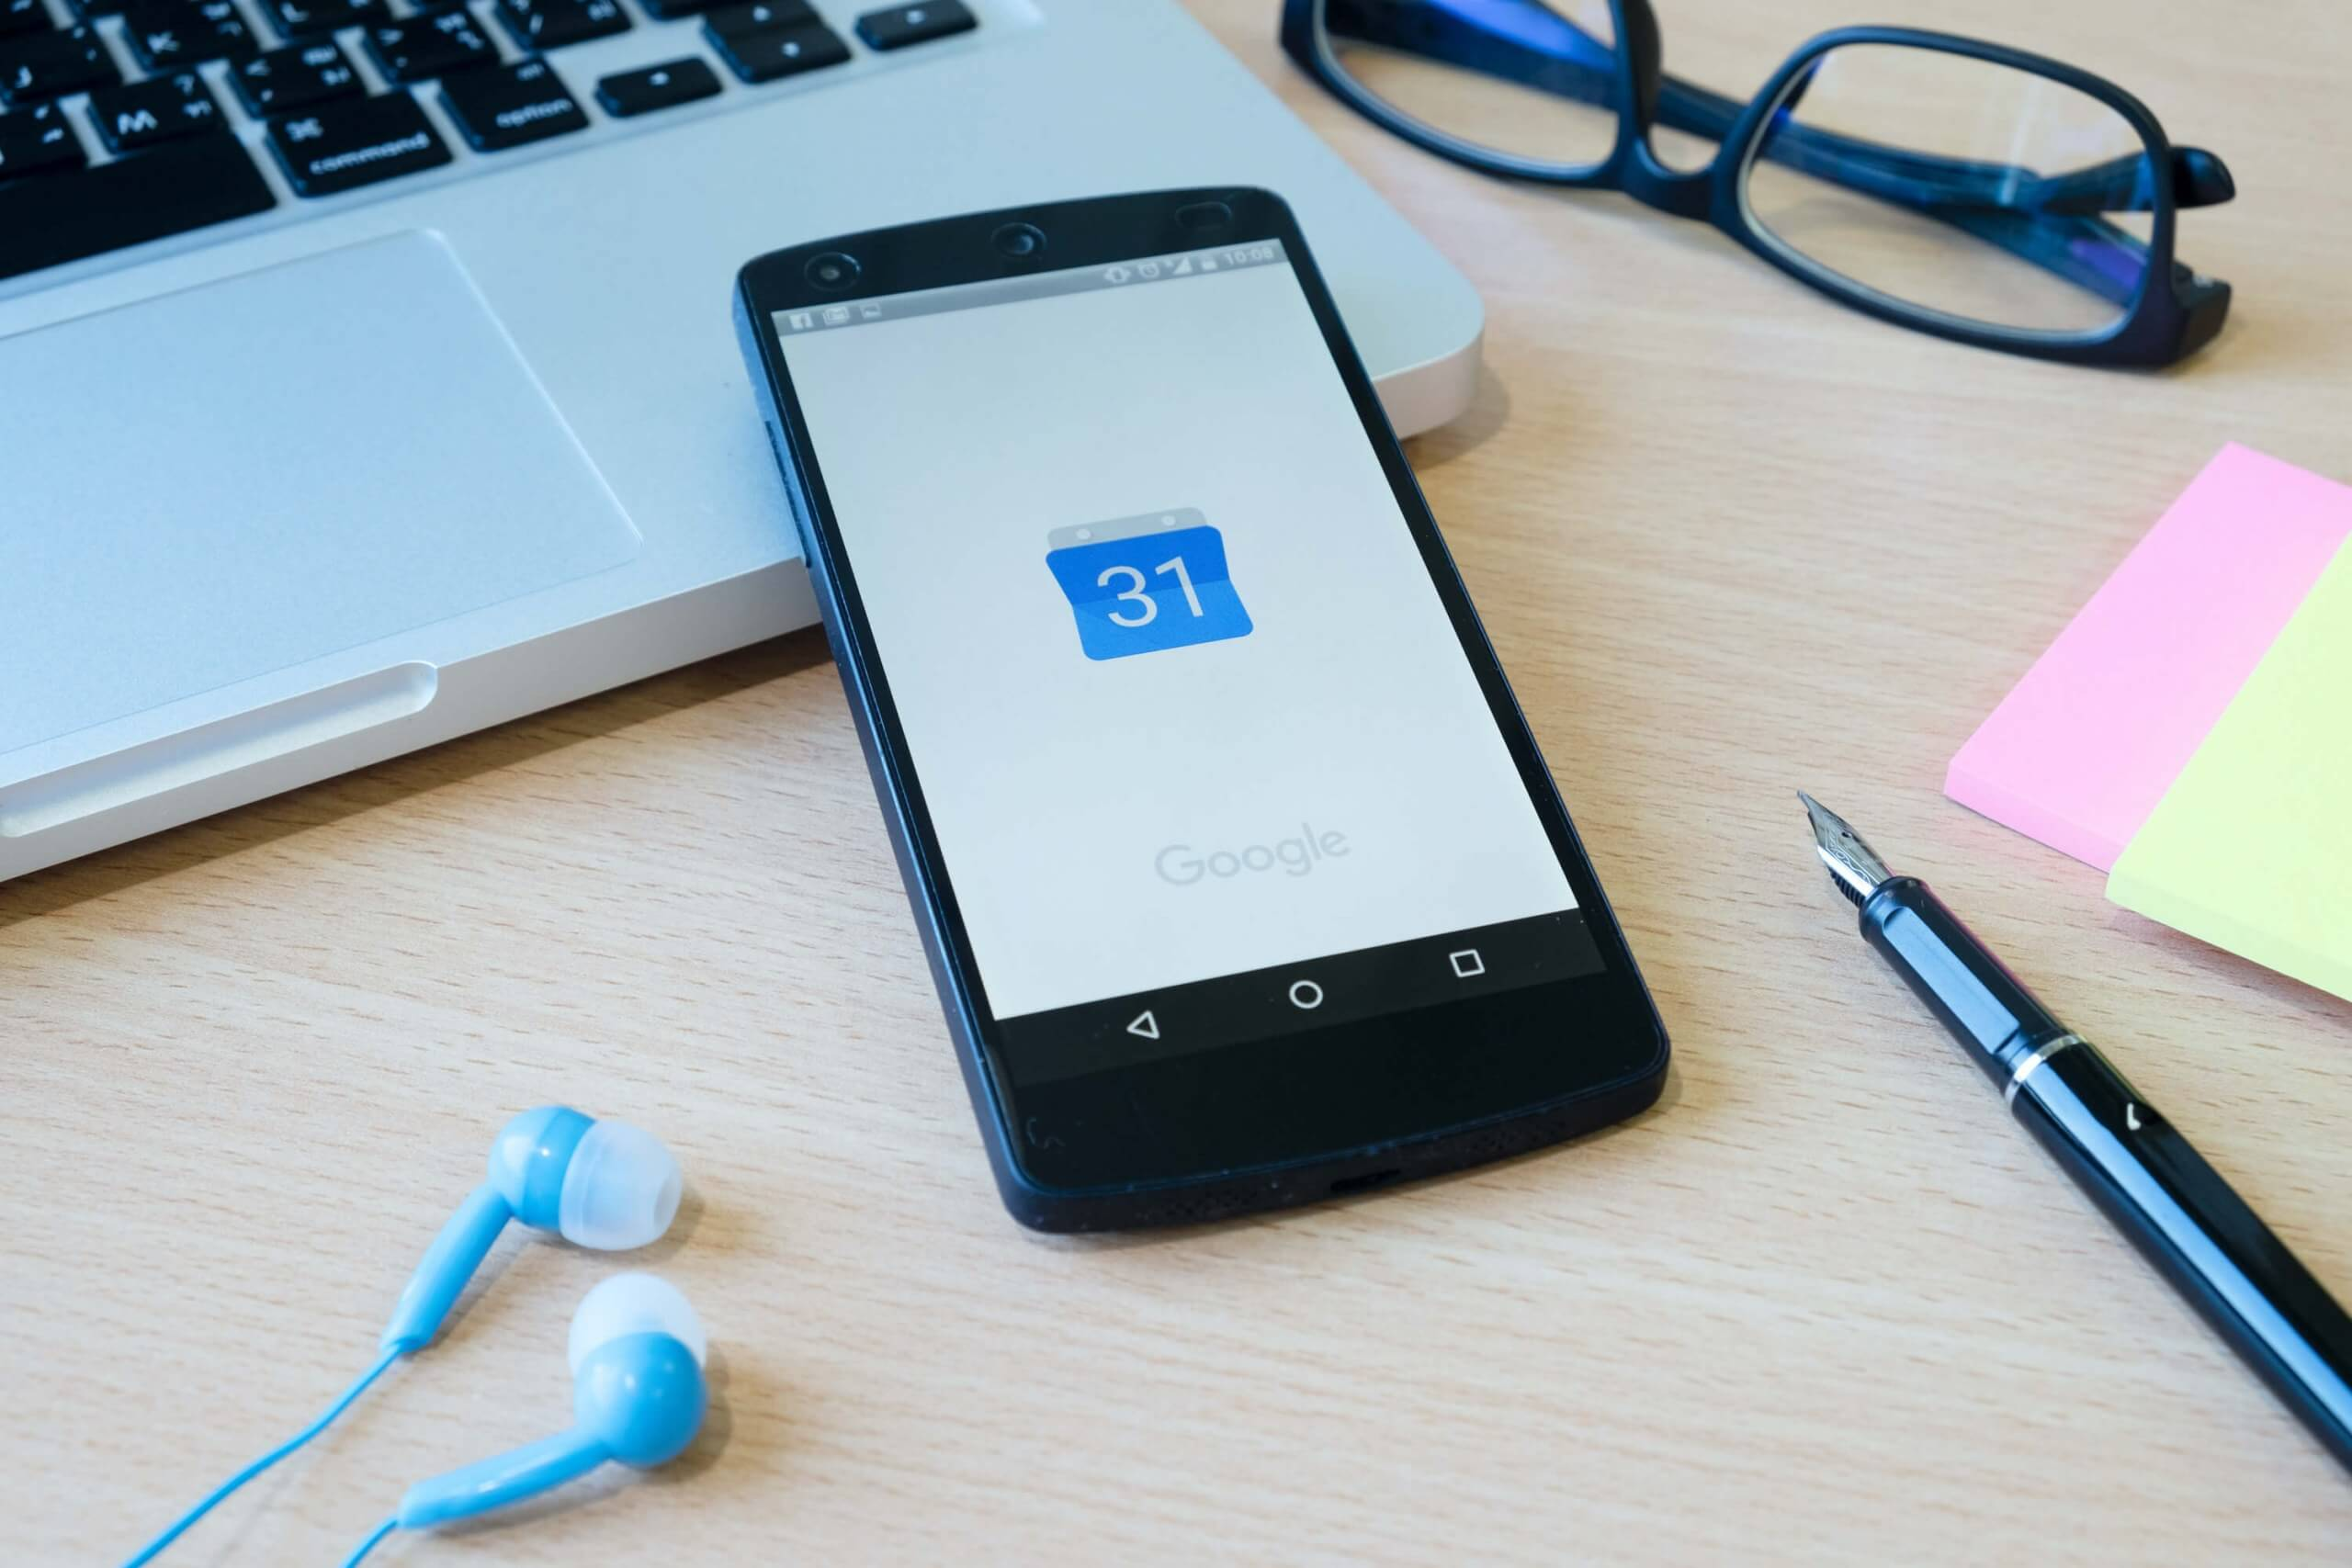 Google's 'cal.new' is a quick way for scheduling Calendar entries